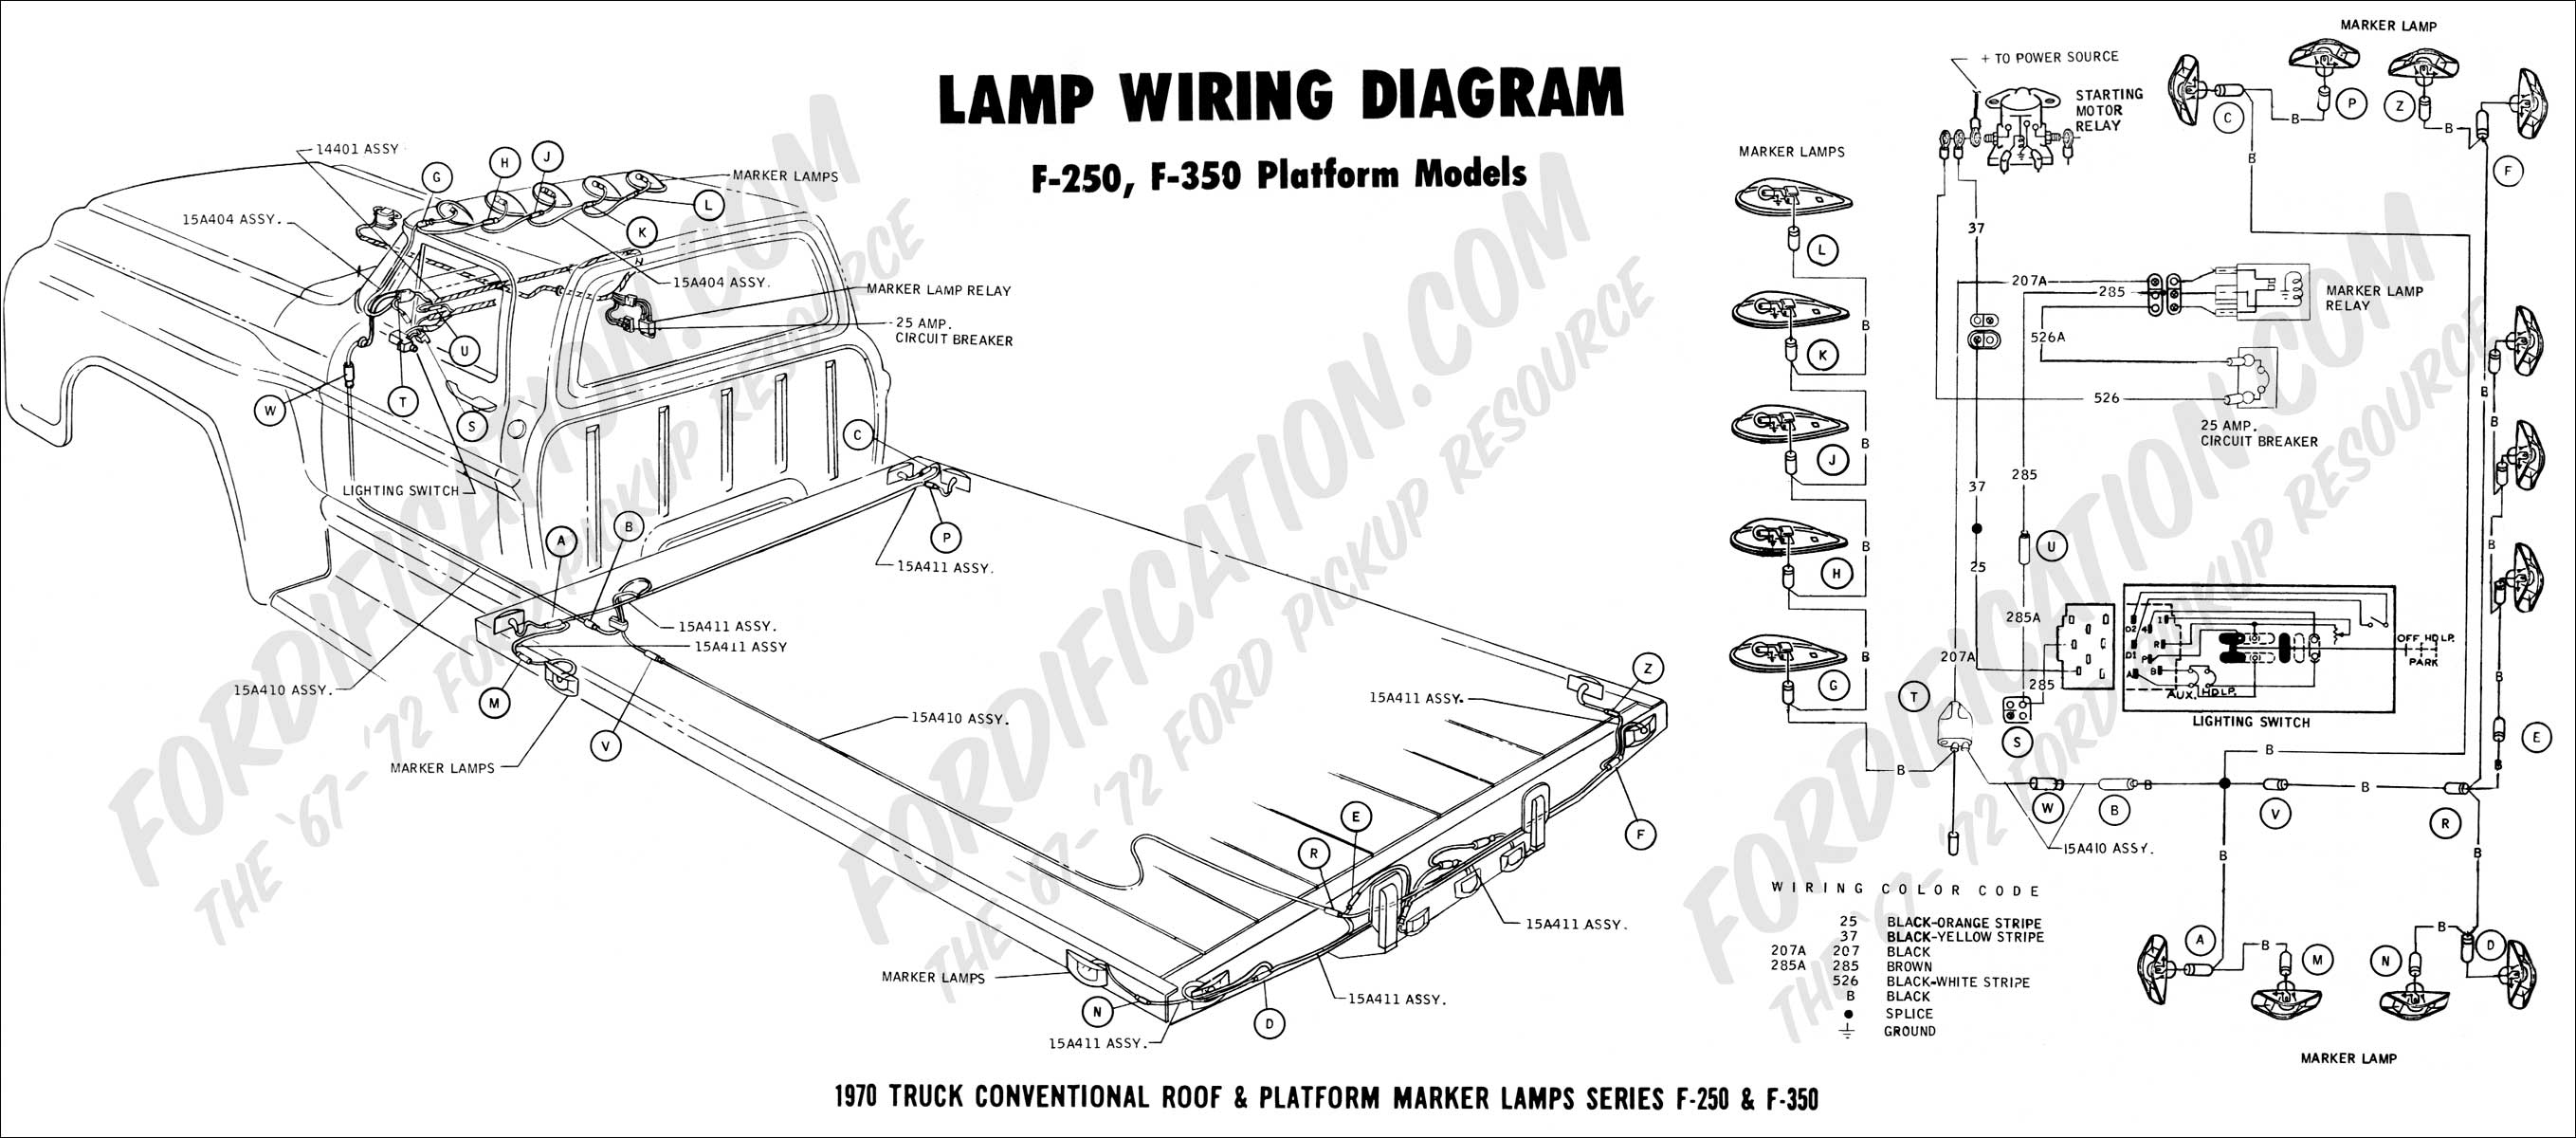 wiring diagram ford f250 the wiring diagram ford truck technical drawings and schematics section h wiring wiring diagram